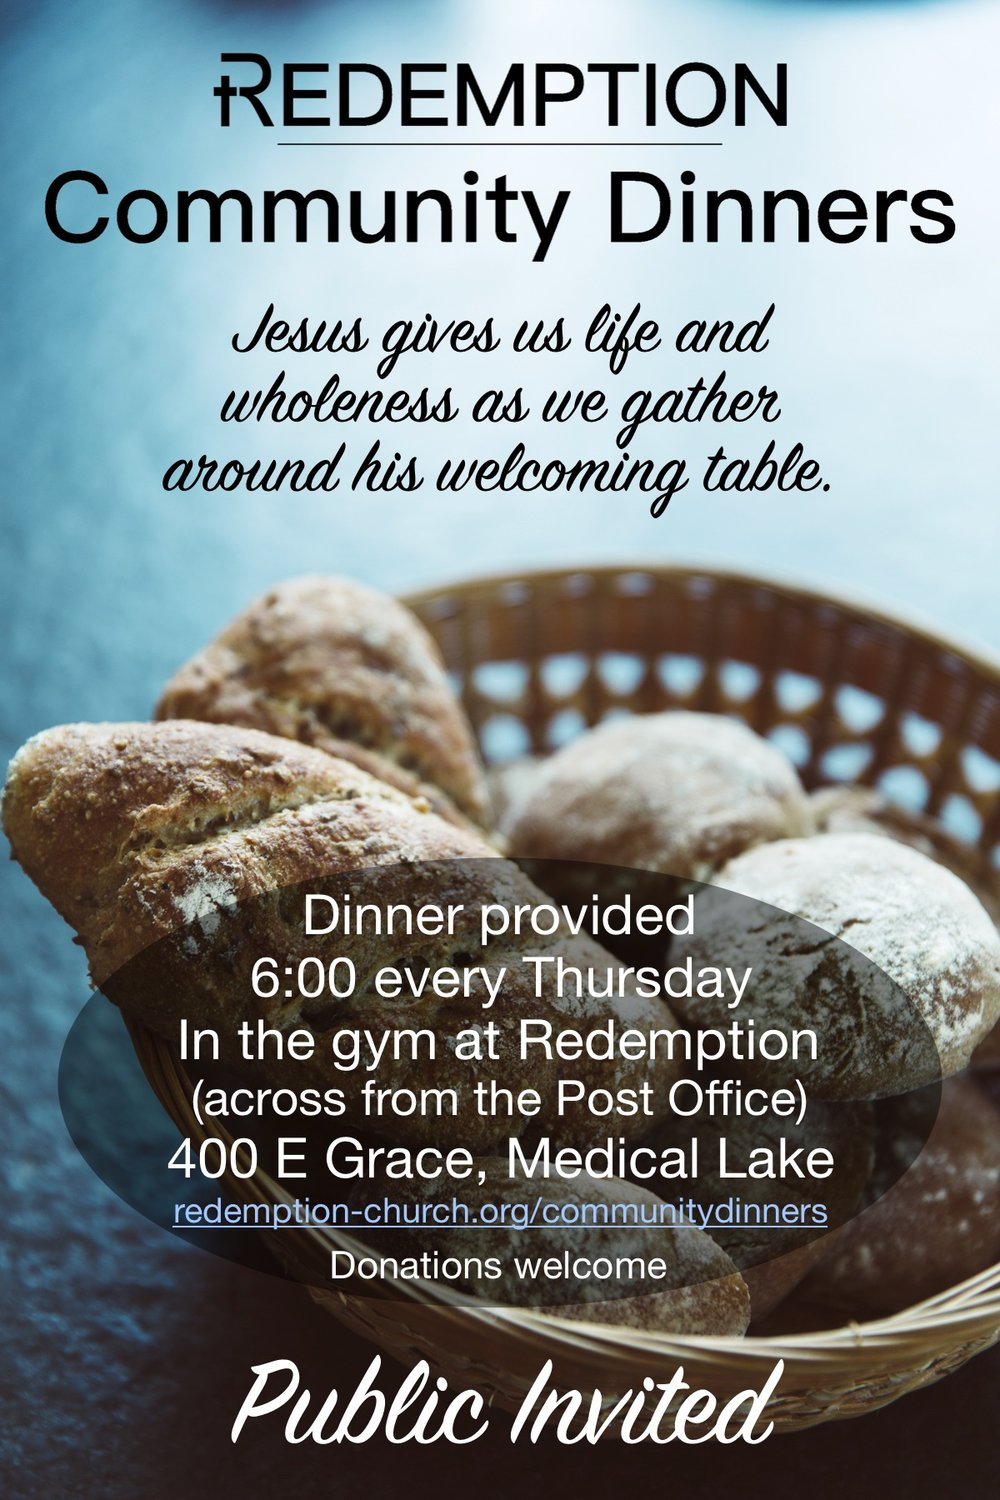 recemption-community-dinners-medical-lake-invite-card.jpg